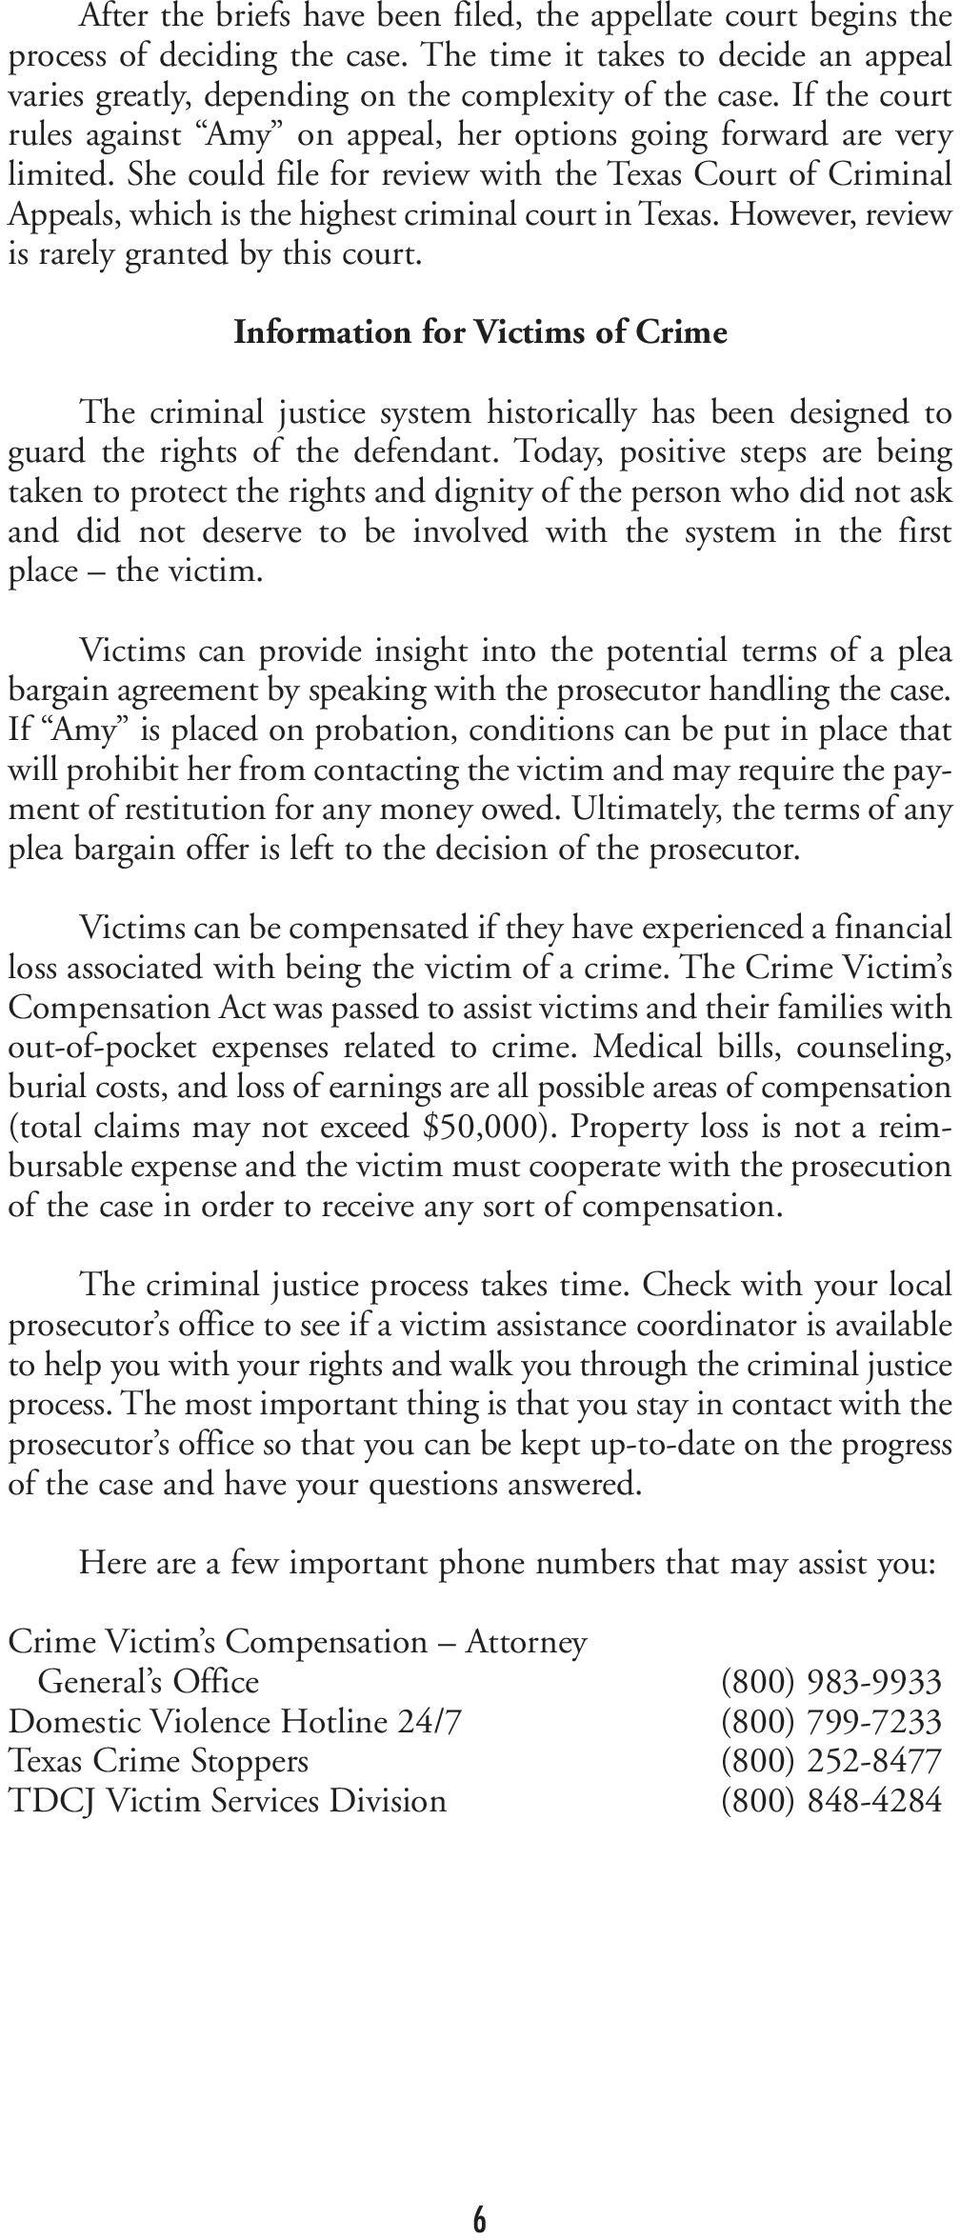 However, review is rarely granted by this court. Information for Victims of Crime The criminal justice system historically has been designed to guard the rights of the defendant.